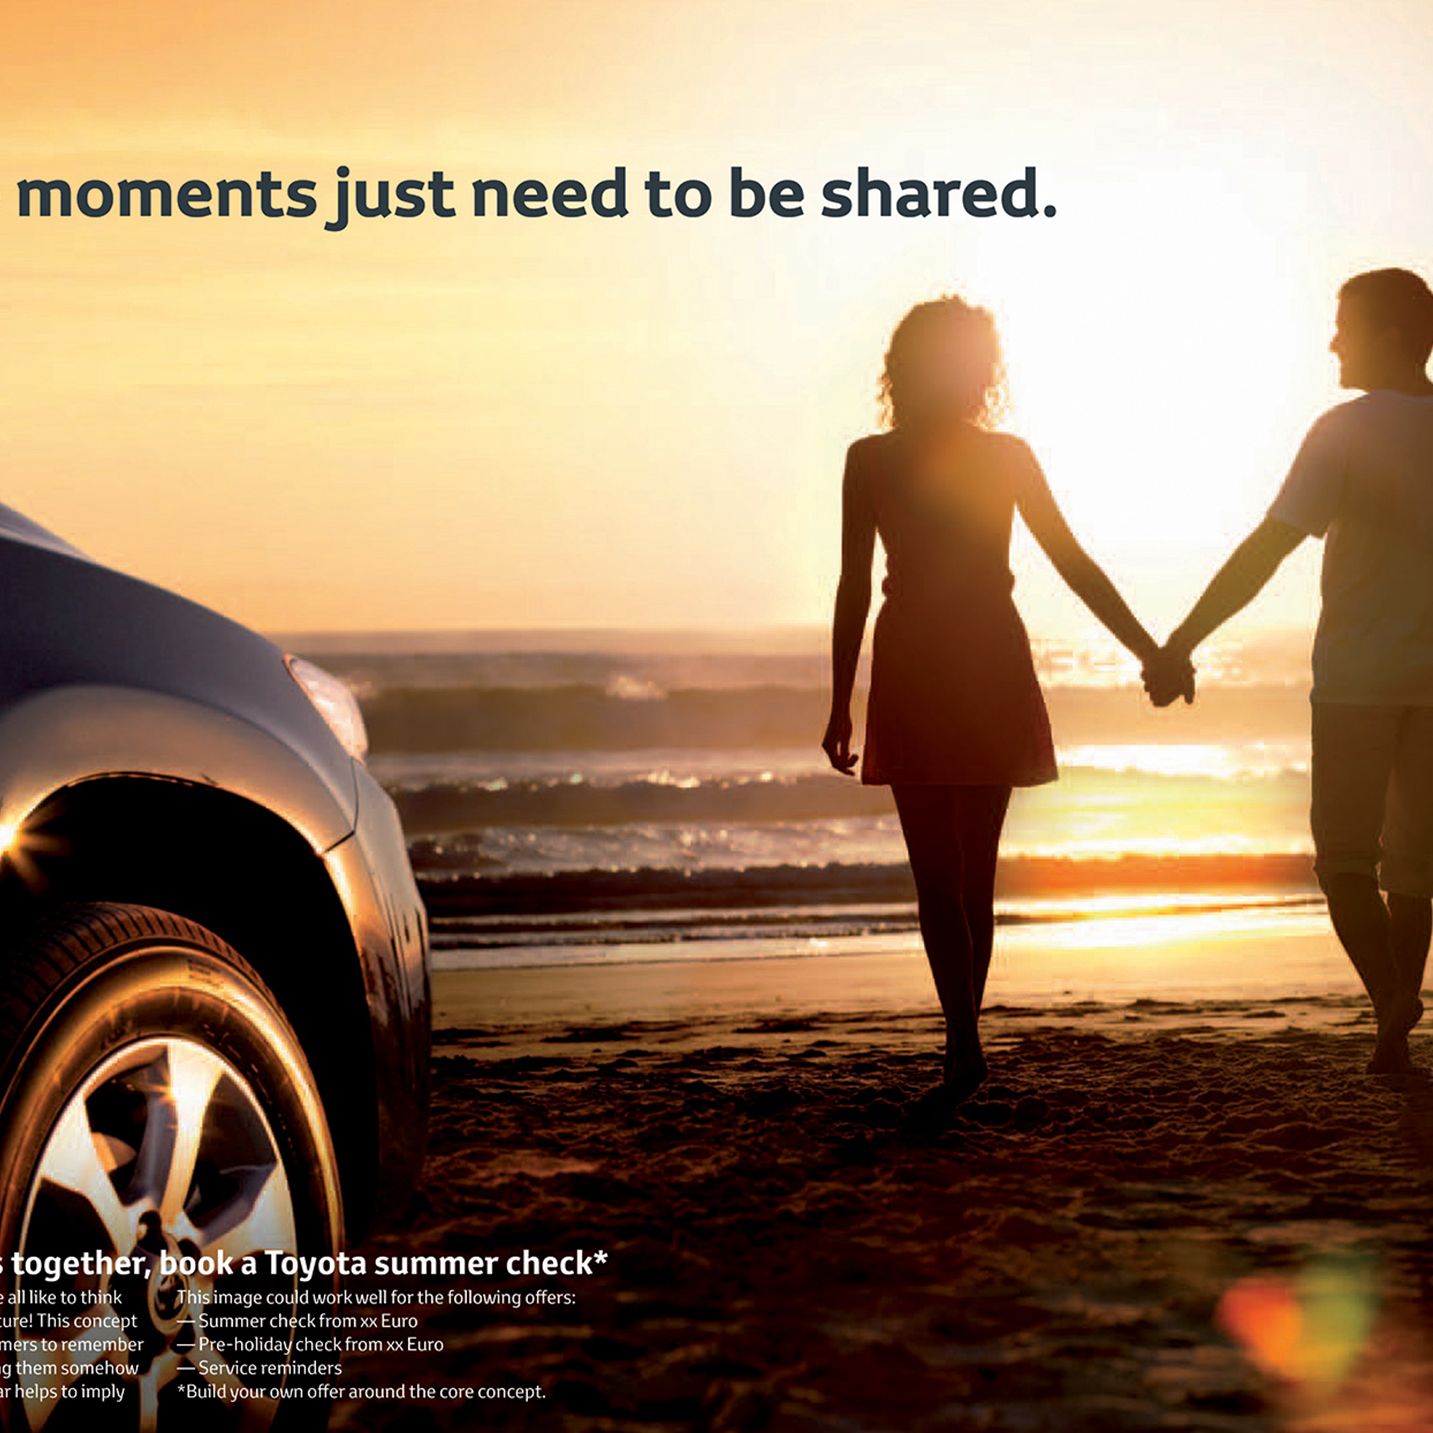 HOME PAGE - TEMPLATE-Recovered_0000_42.Port - Toyota Ads 8 NEW.jpg